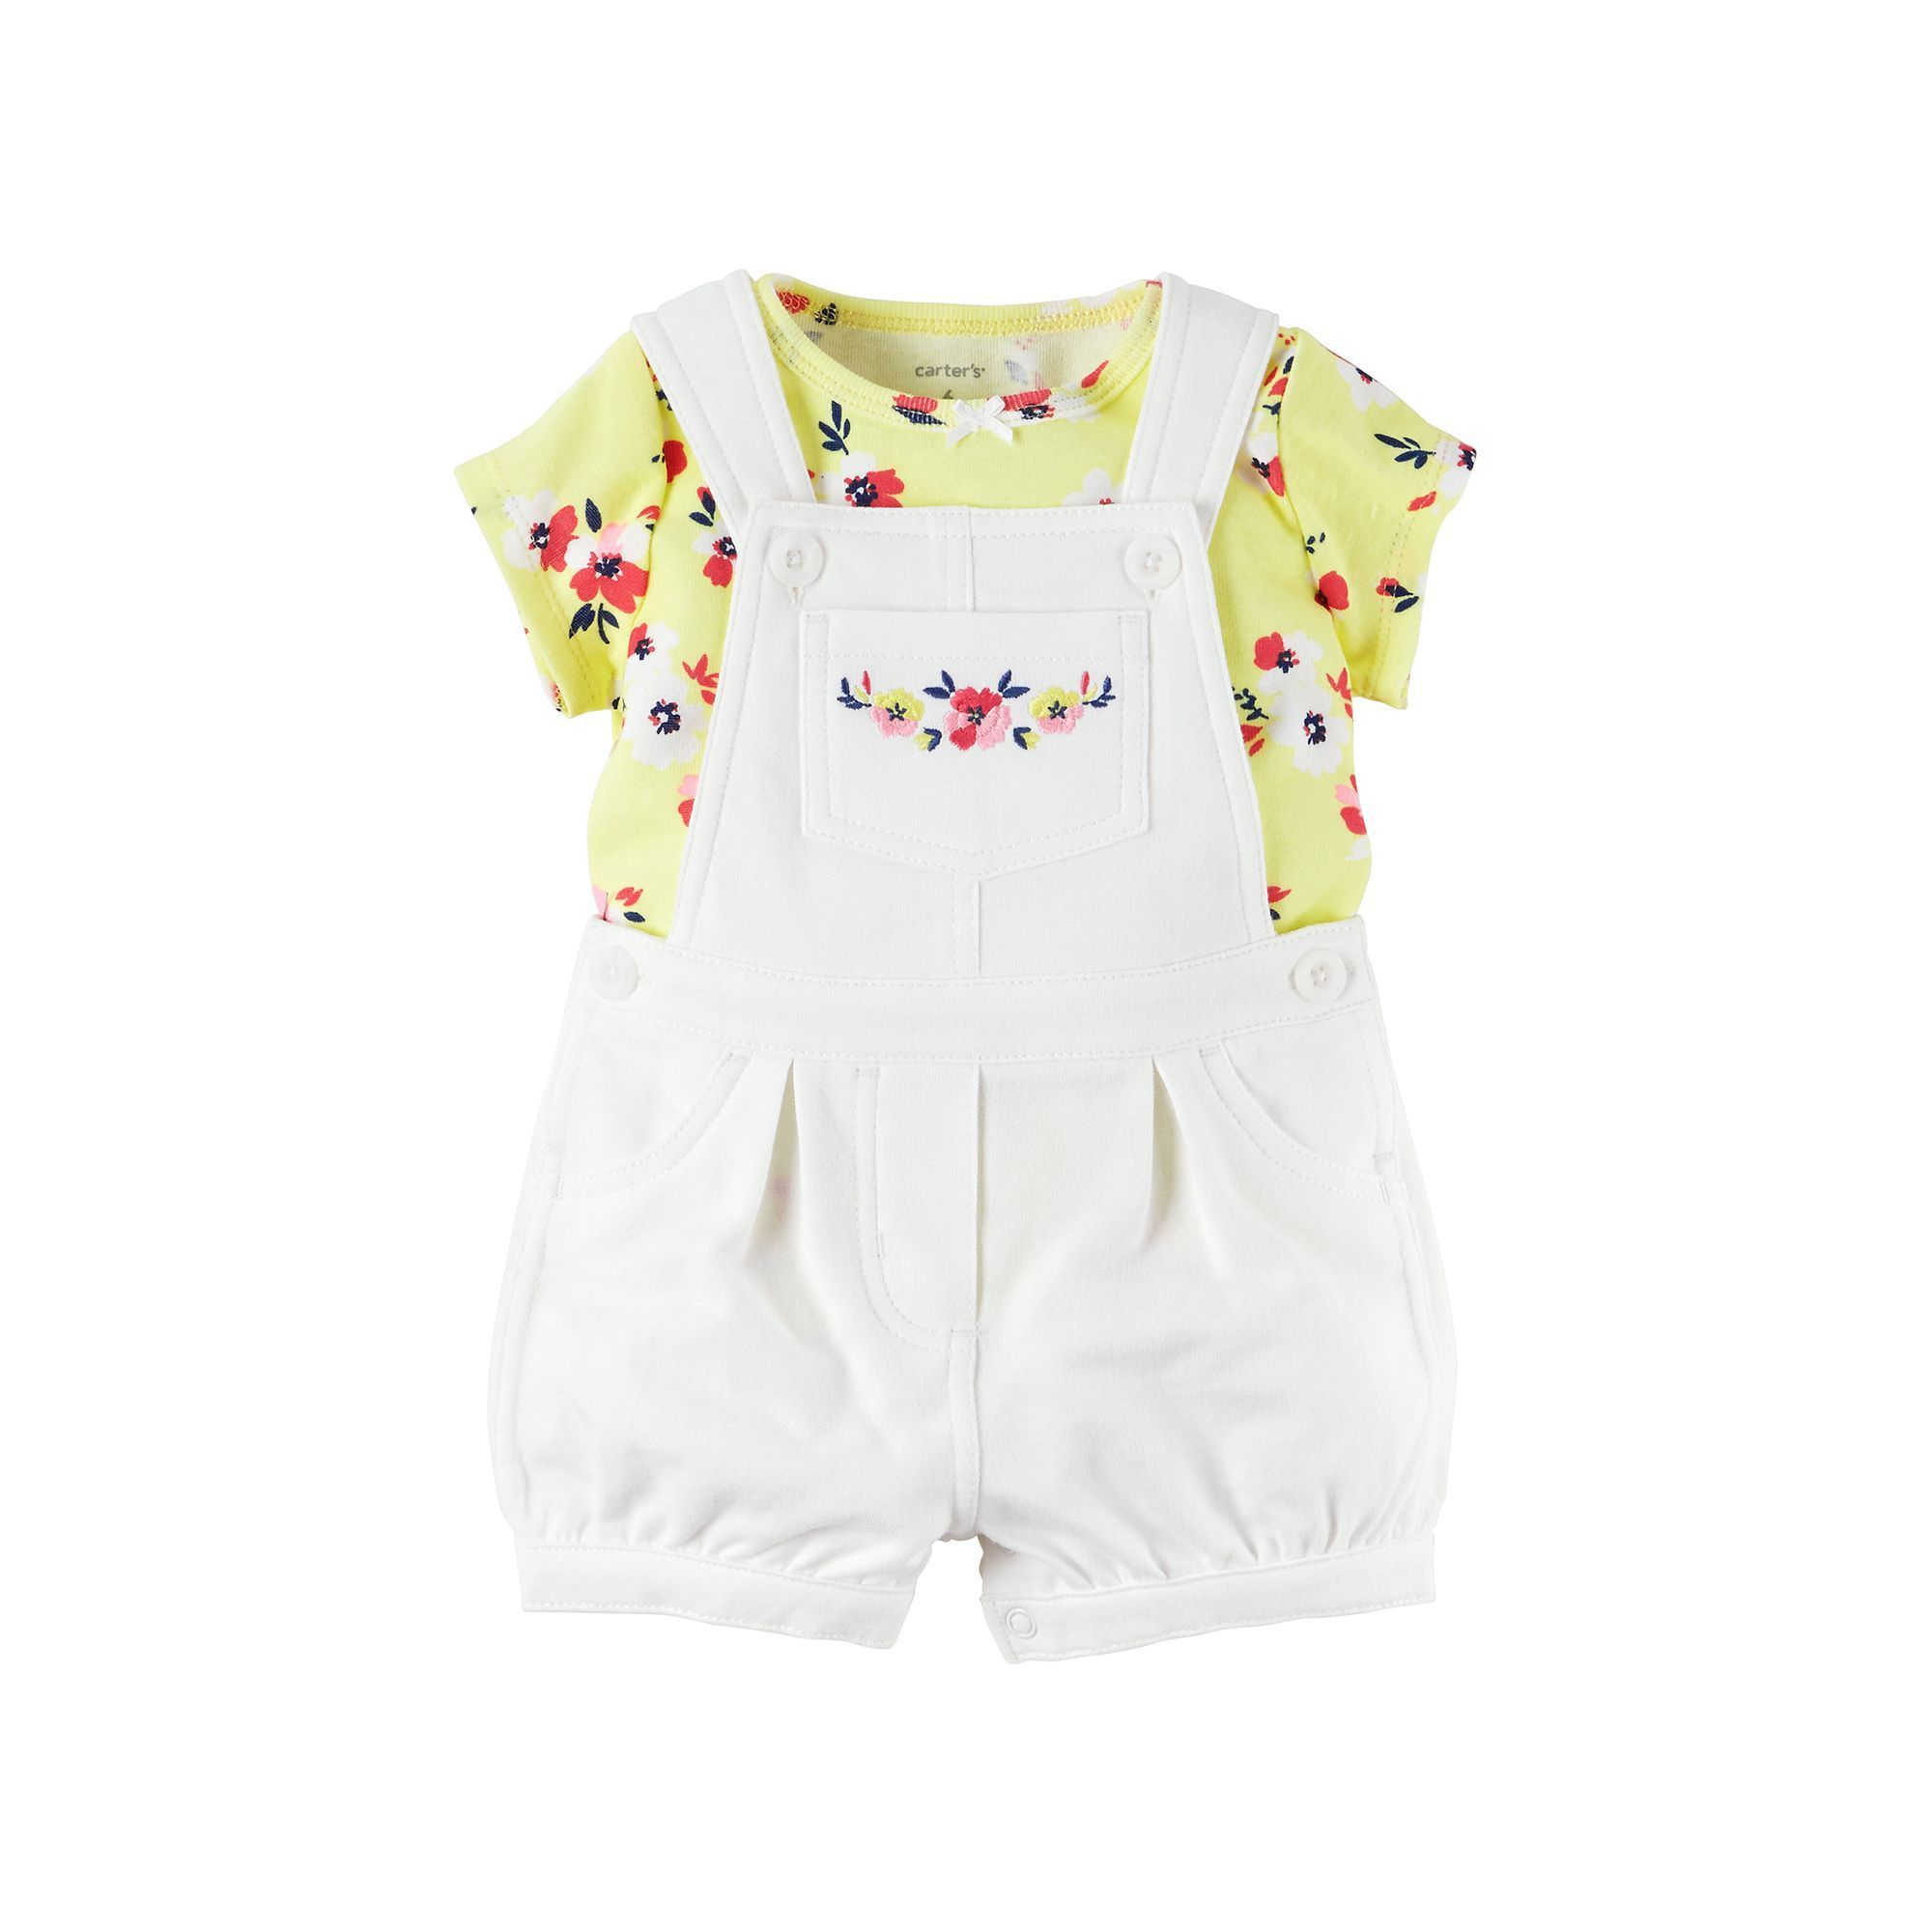 Baby Girl Carter s Floral Tee & French Terry Shortalls Set Size